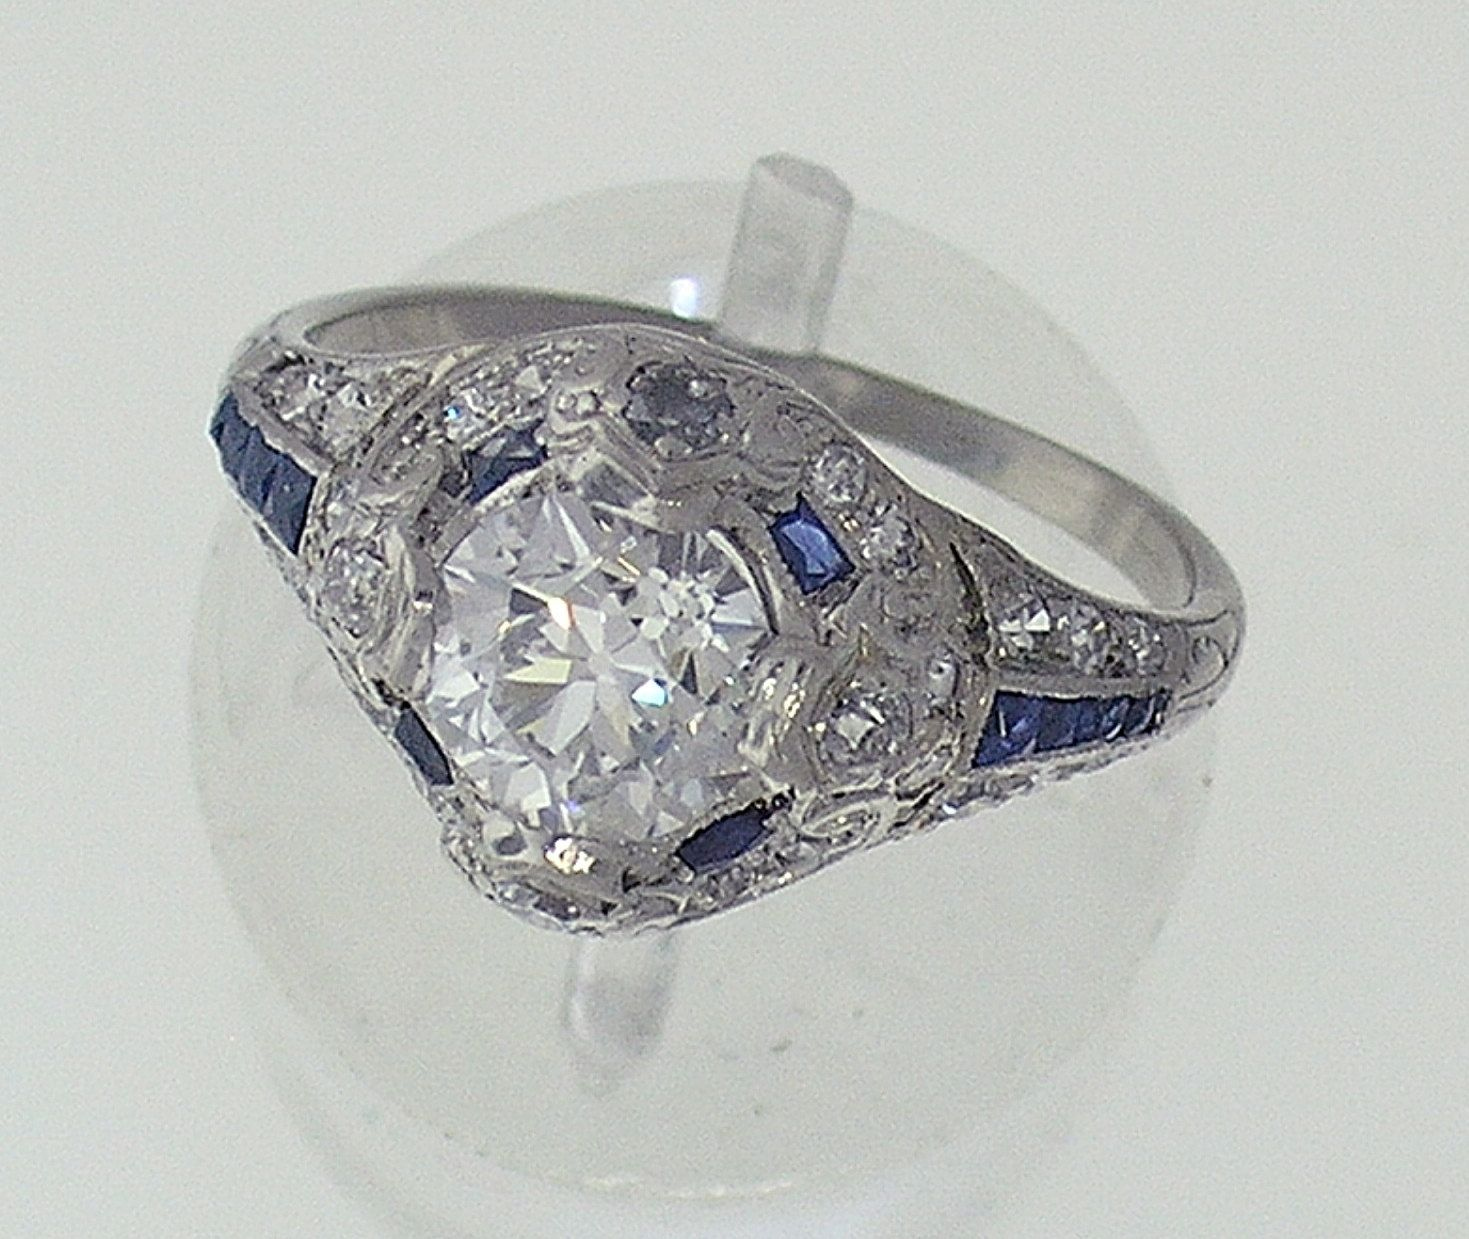 Art Deco Platinum Diamond & Sapphire Engagement Ring 1.01cts E color VS1 clarity. .